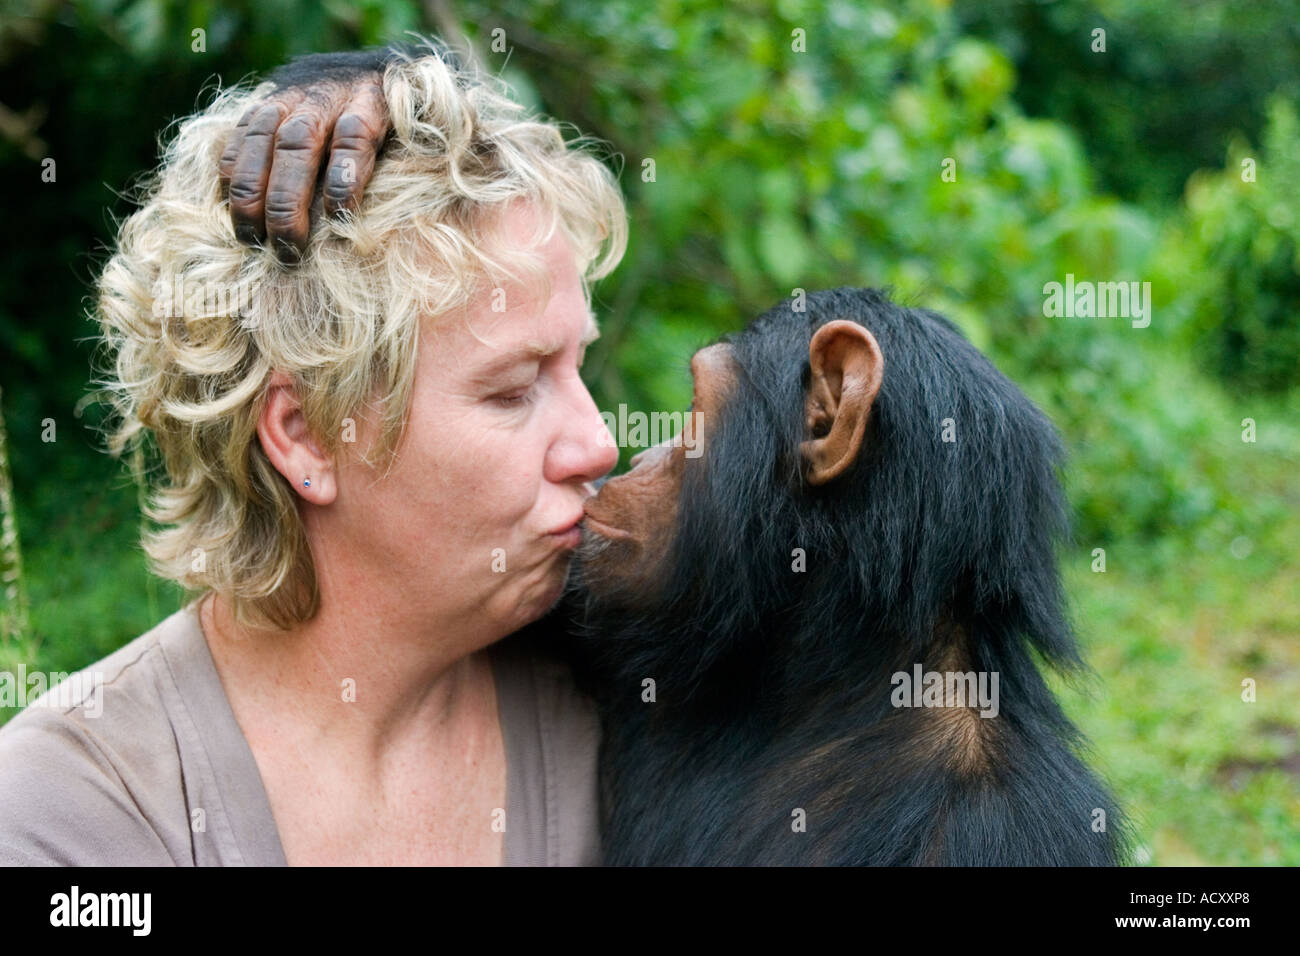 debbie-cox-of-the-jane-goodall-institute-with-loving-chimpanzee-protected-ACXXP8.jpg